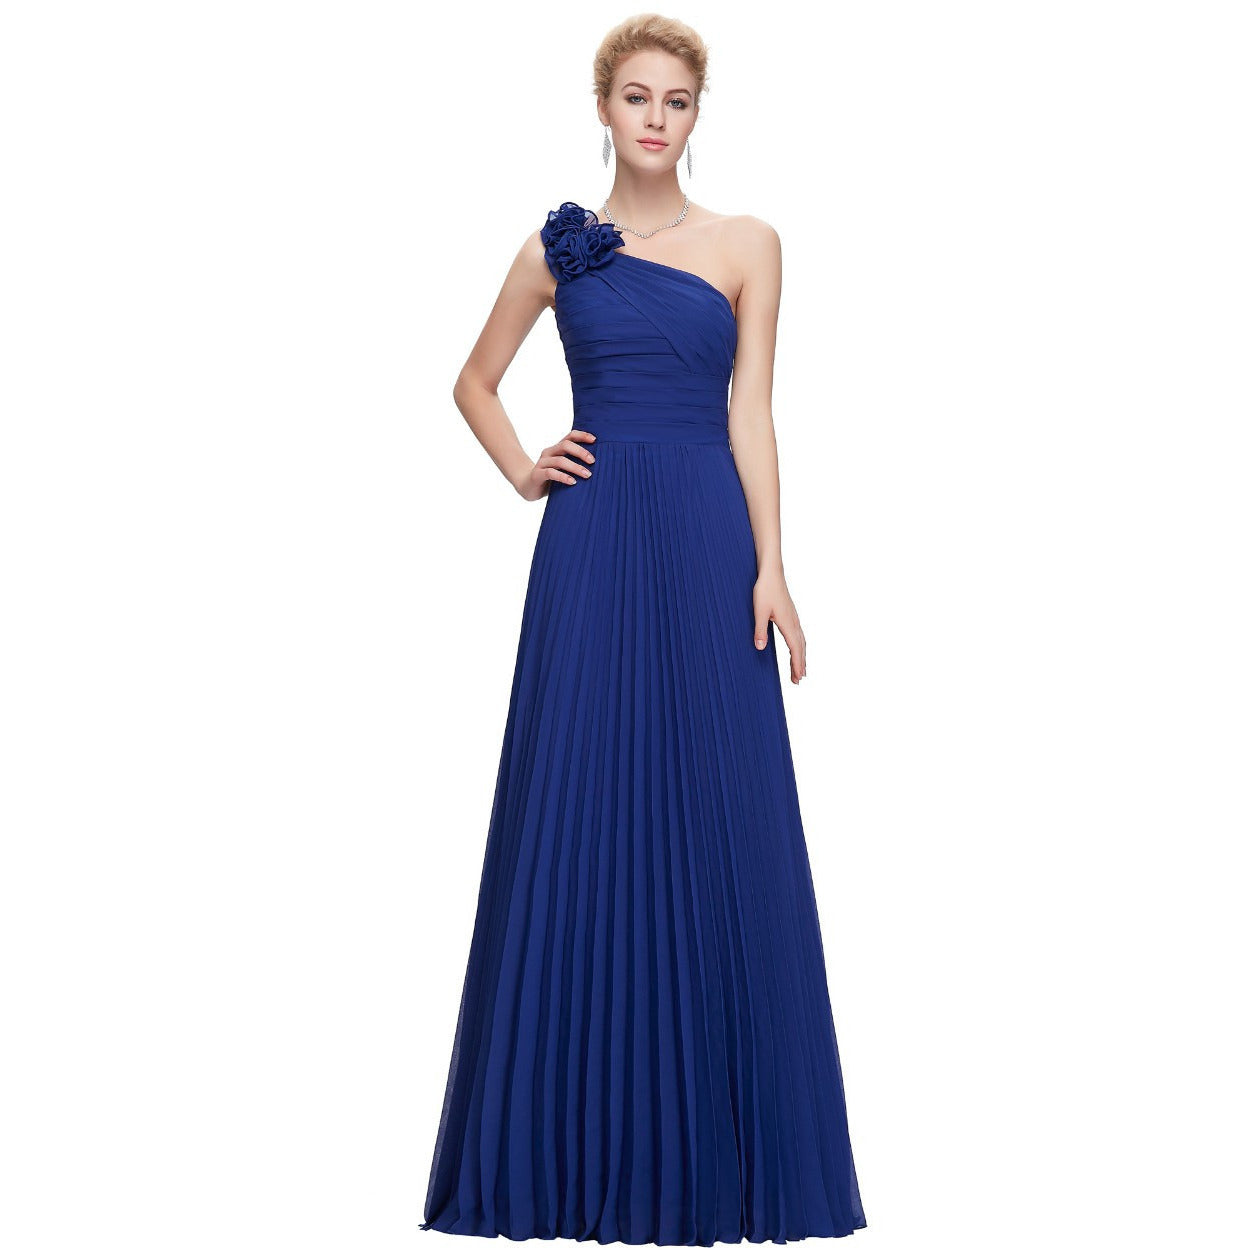 Grace Karin Chiffon One Shoulder Formal Evening Gown - Indifashion